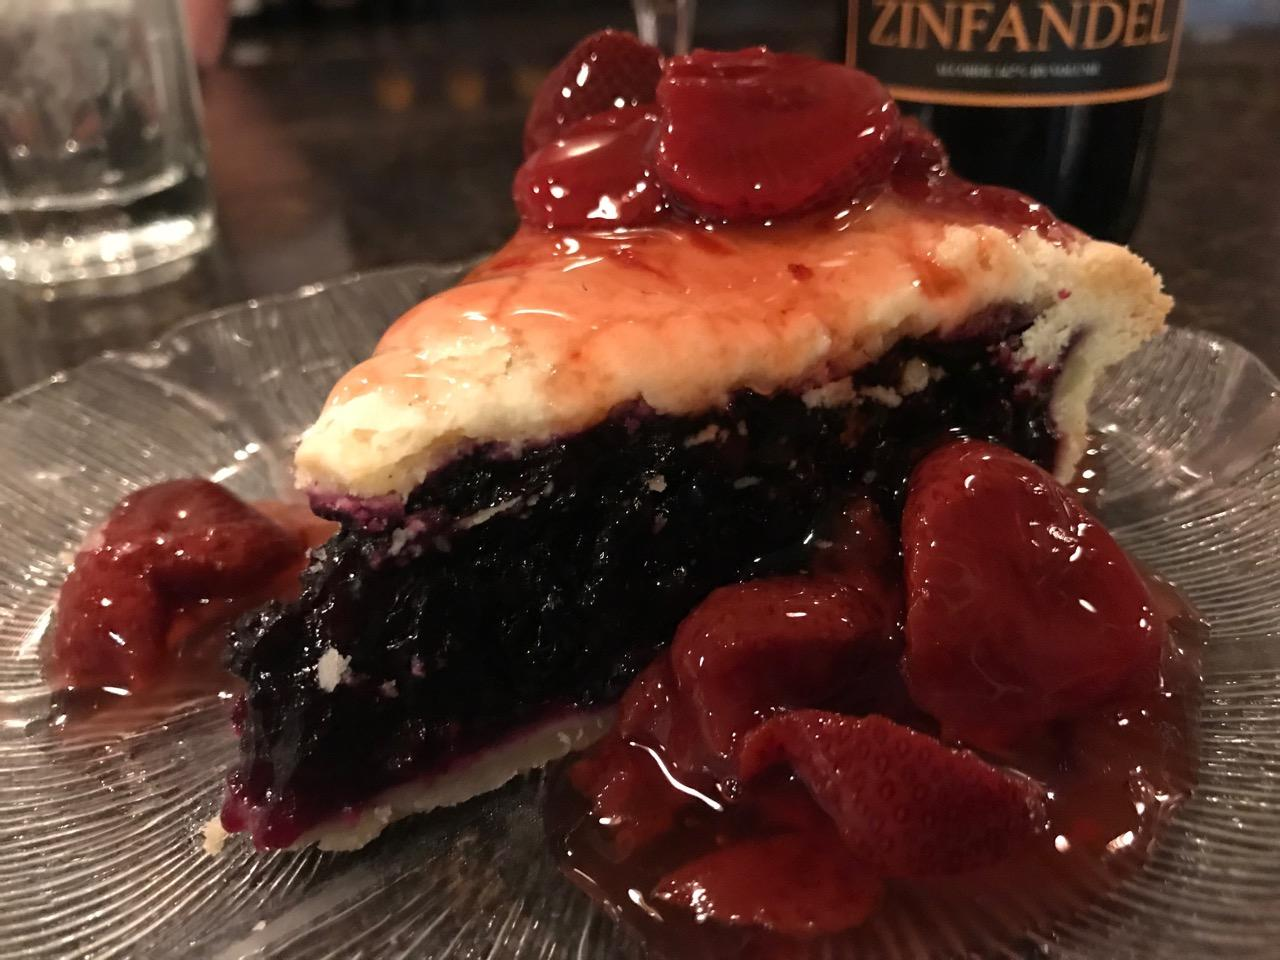 FRIENDS RESTAURANT - BLUEBERRY PIE AND STRAWBERRY SAUCE 2